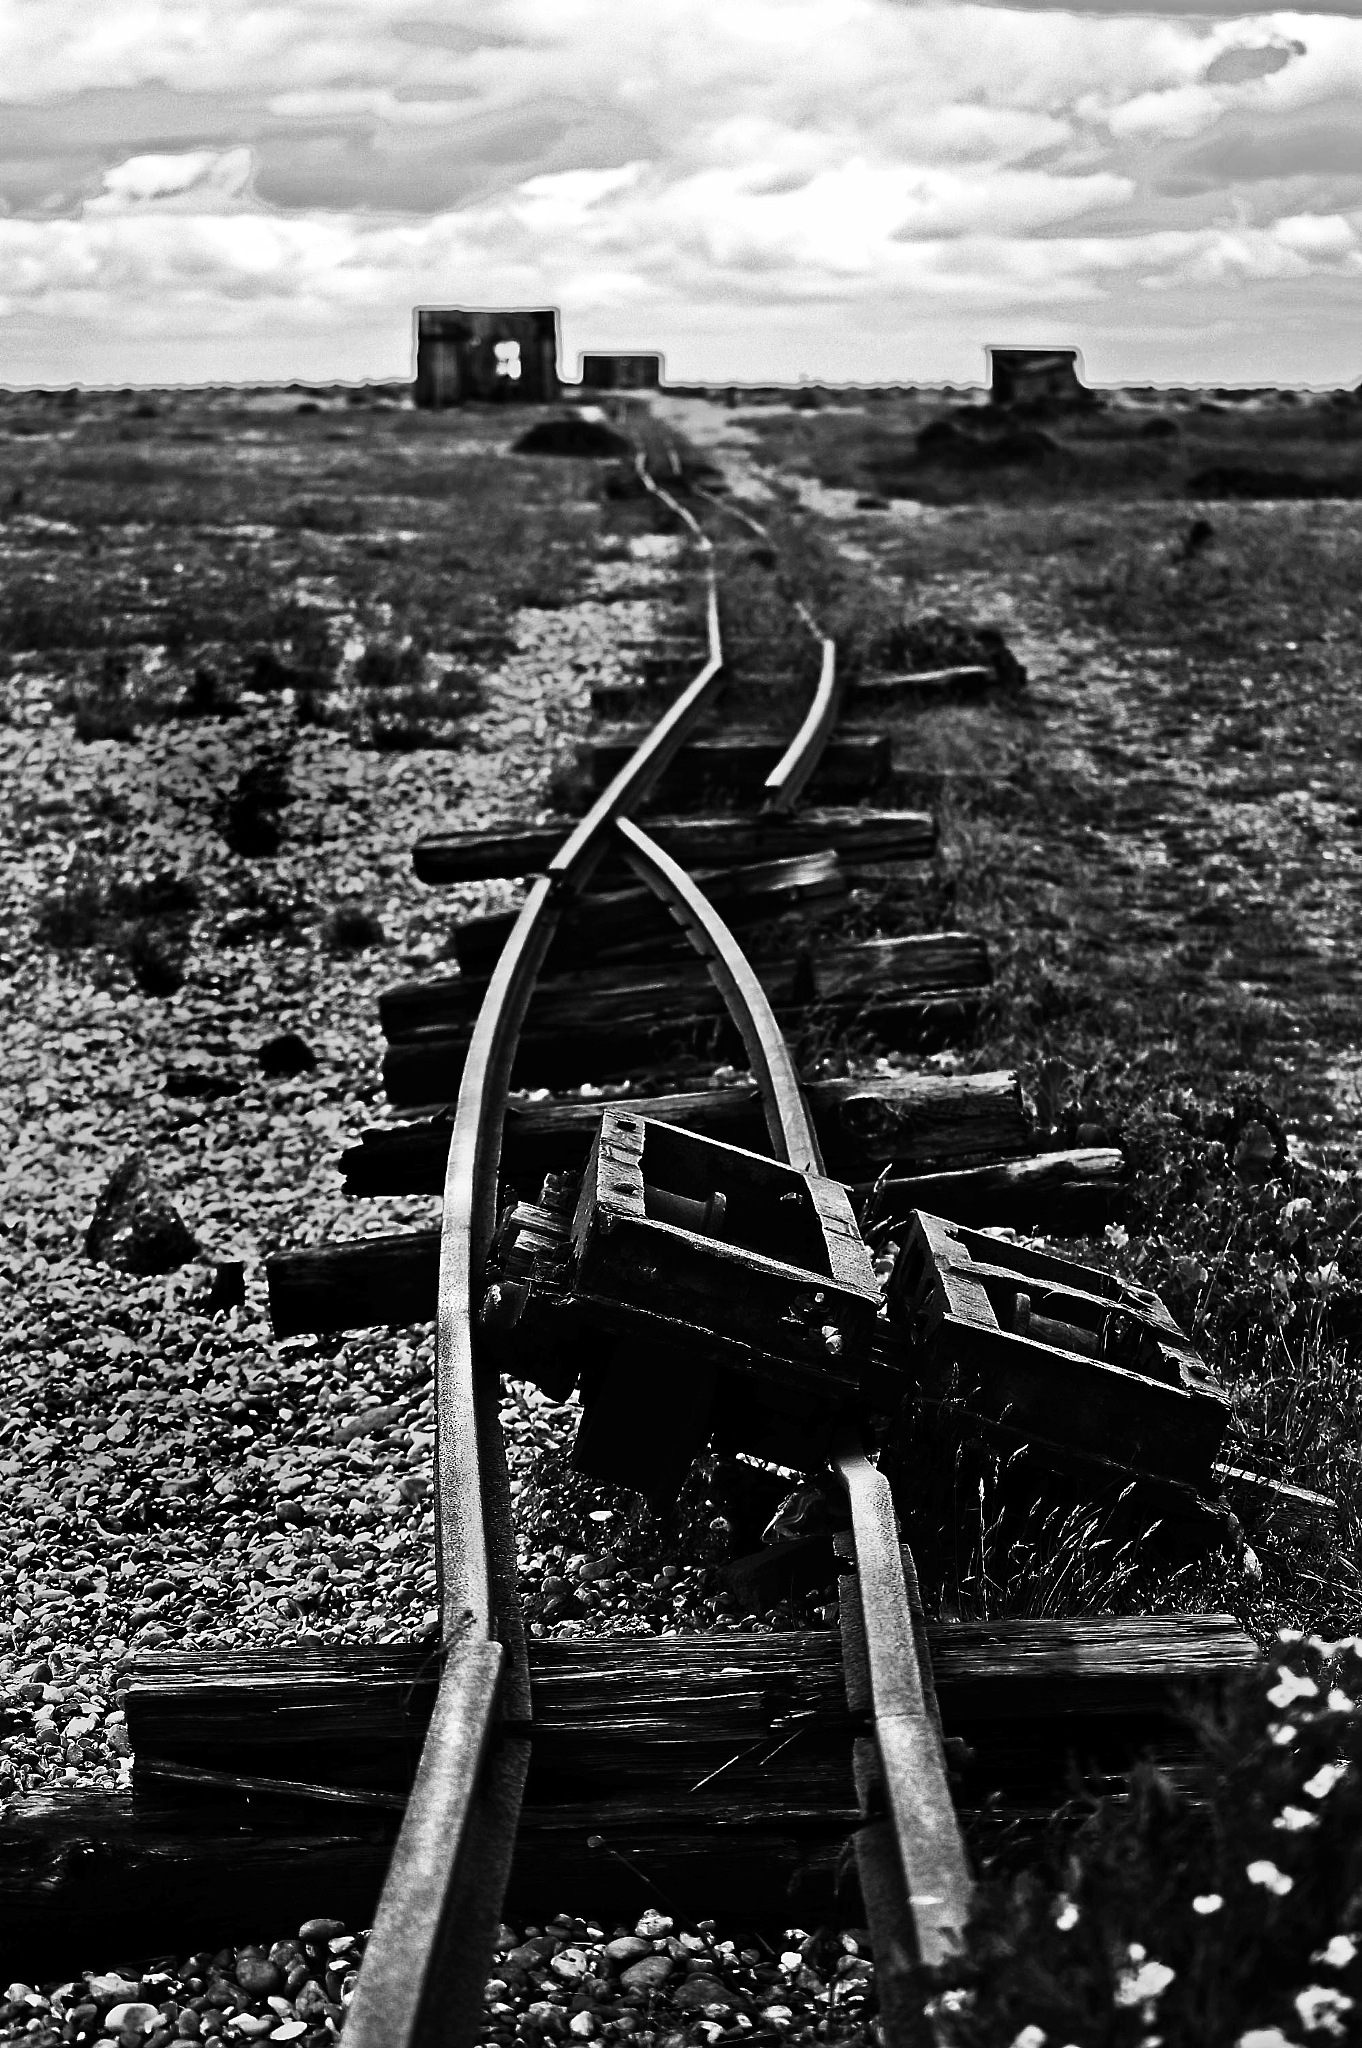 off the rails by edwinphillips